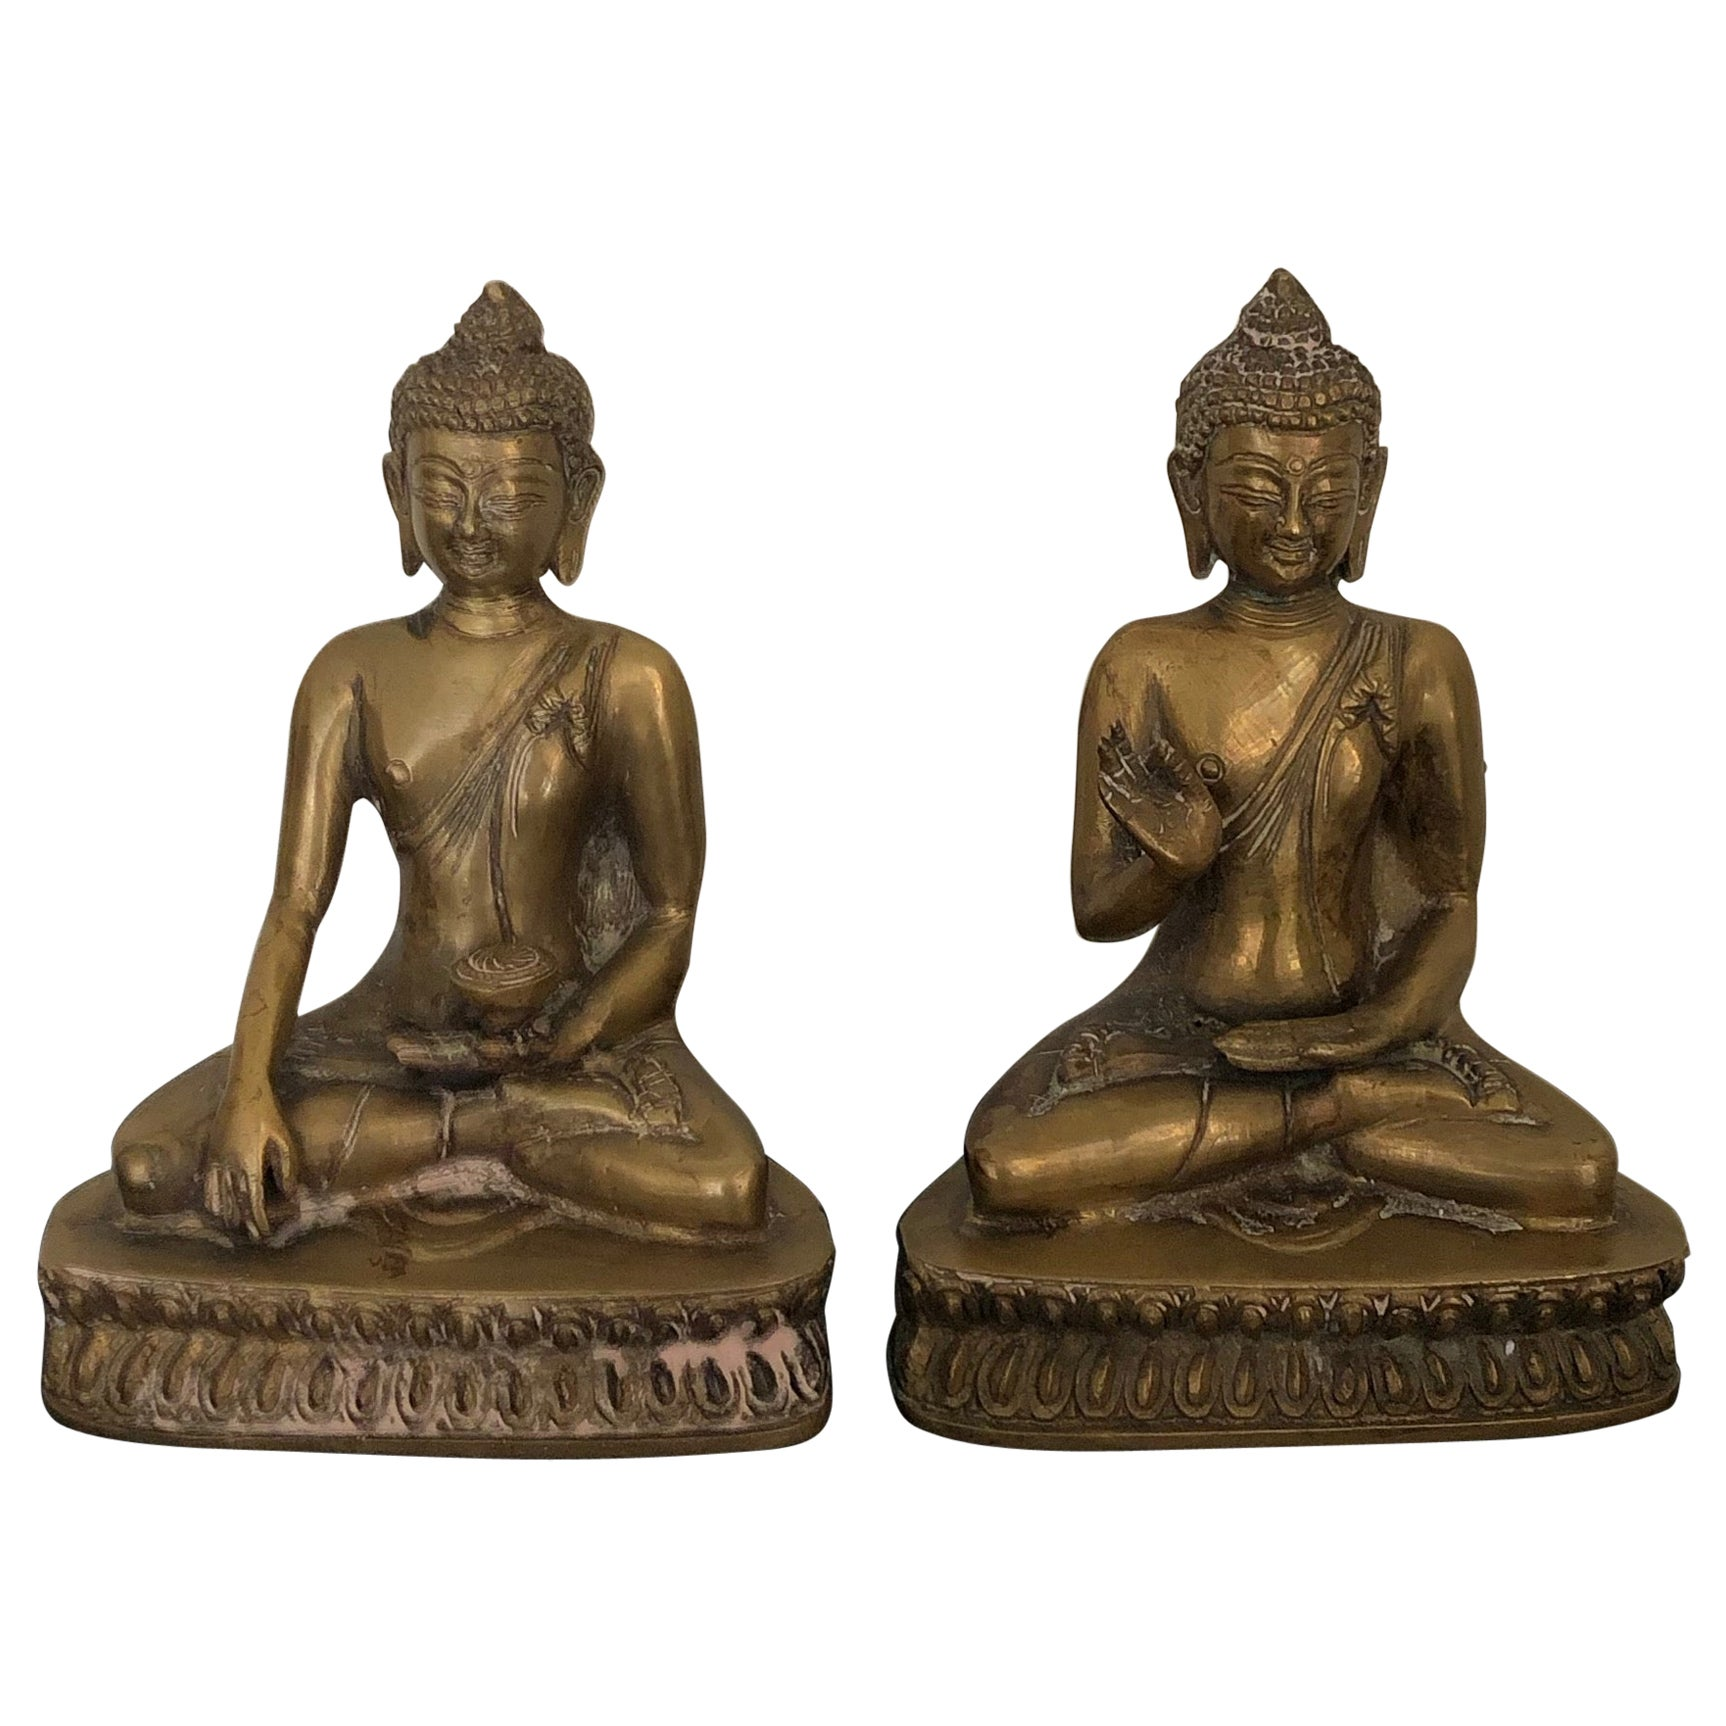 Two Vintage 20th Century Golden Brass Buddah Book ends Bookcase Decoration